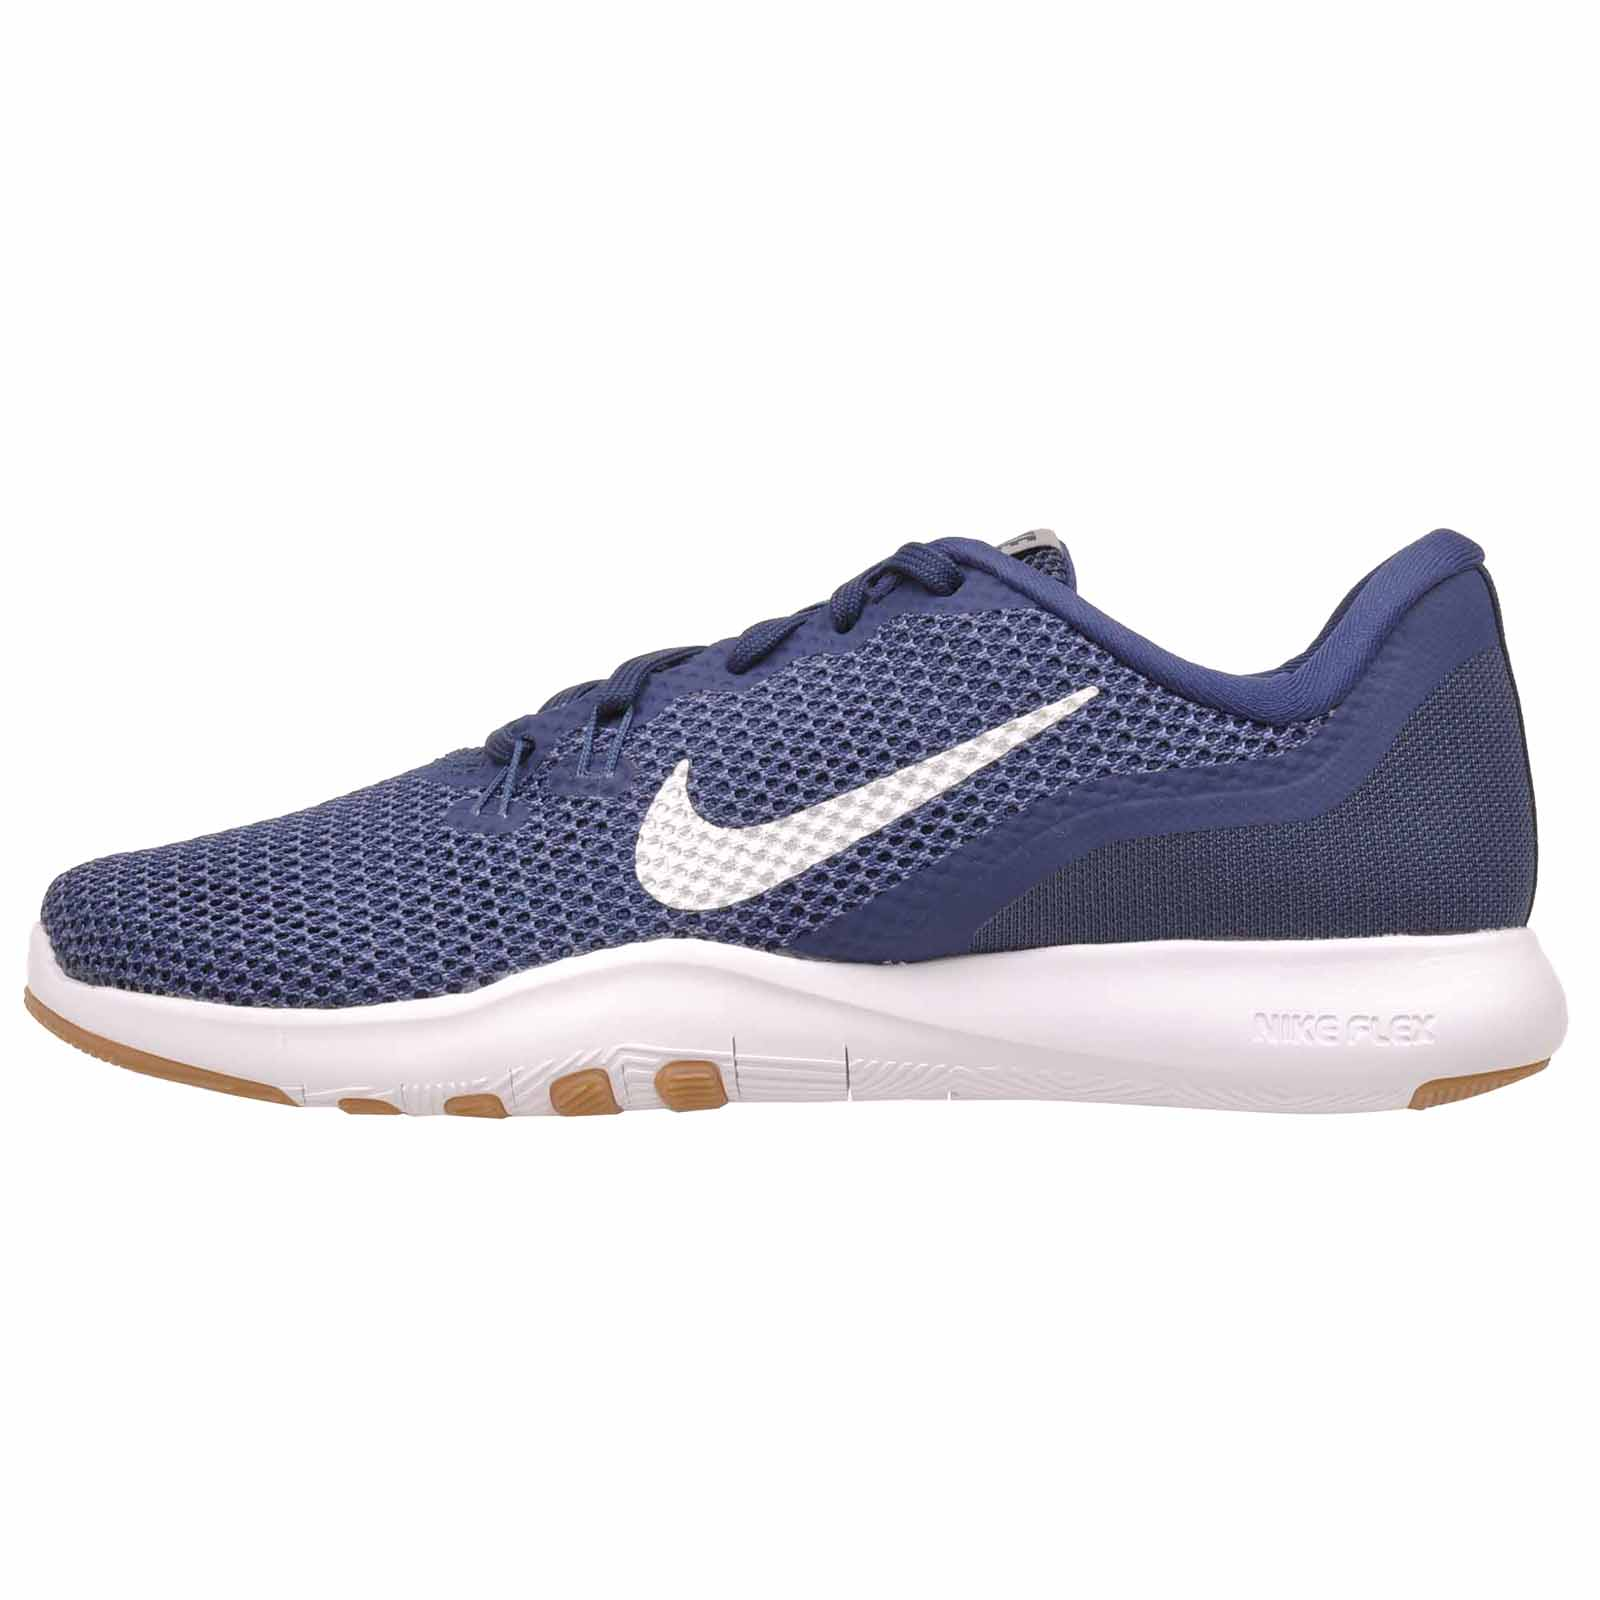 Details about Nike W Flex Trainer 7 Cross Training Womens Shoes Trainers  Navy Blue 898479-444 f43420a4b6c7